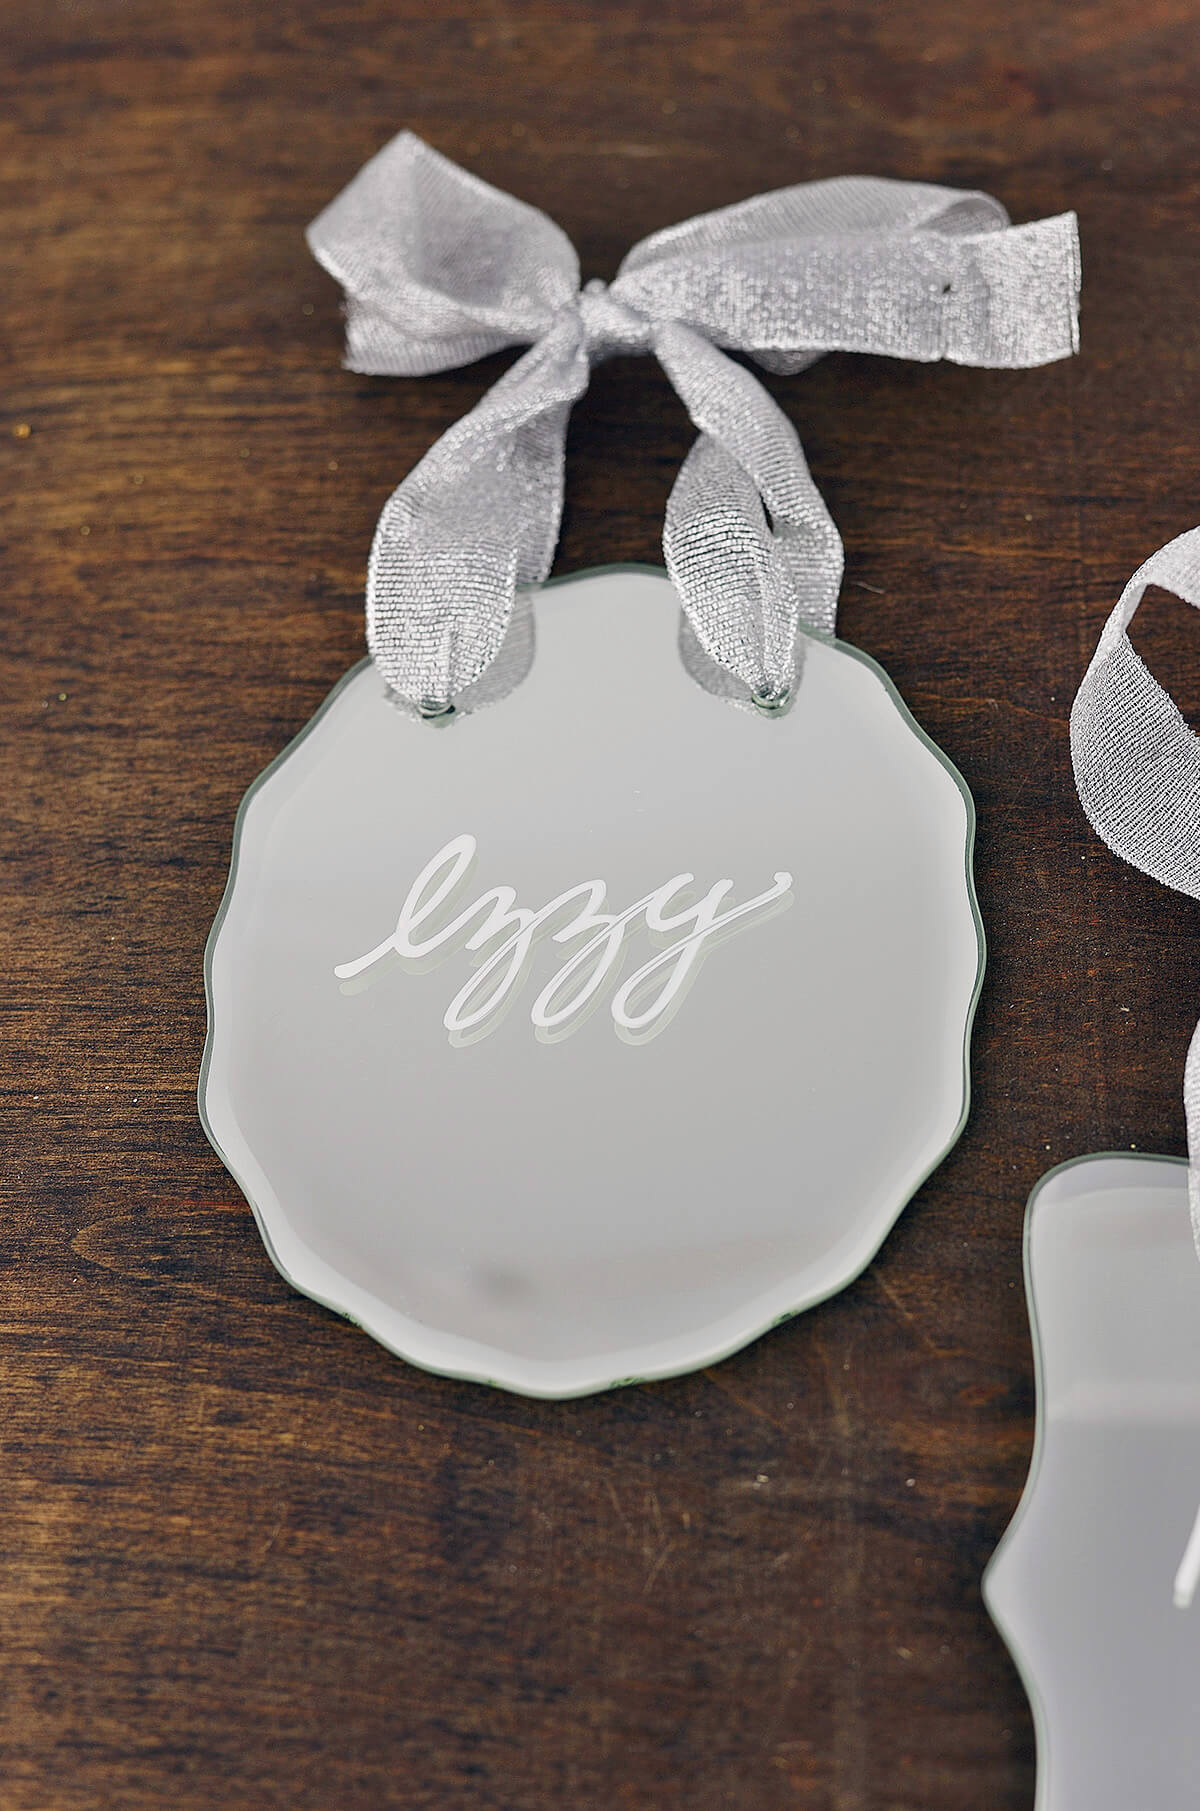 6 Scalloped Oval 4x5in  Hanging Mirror Tags with Ribbon Hanger